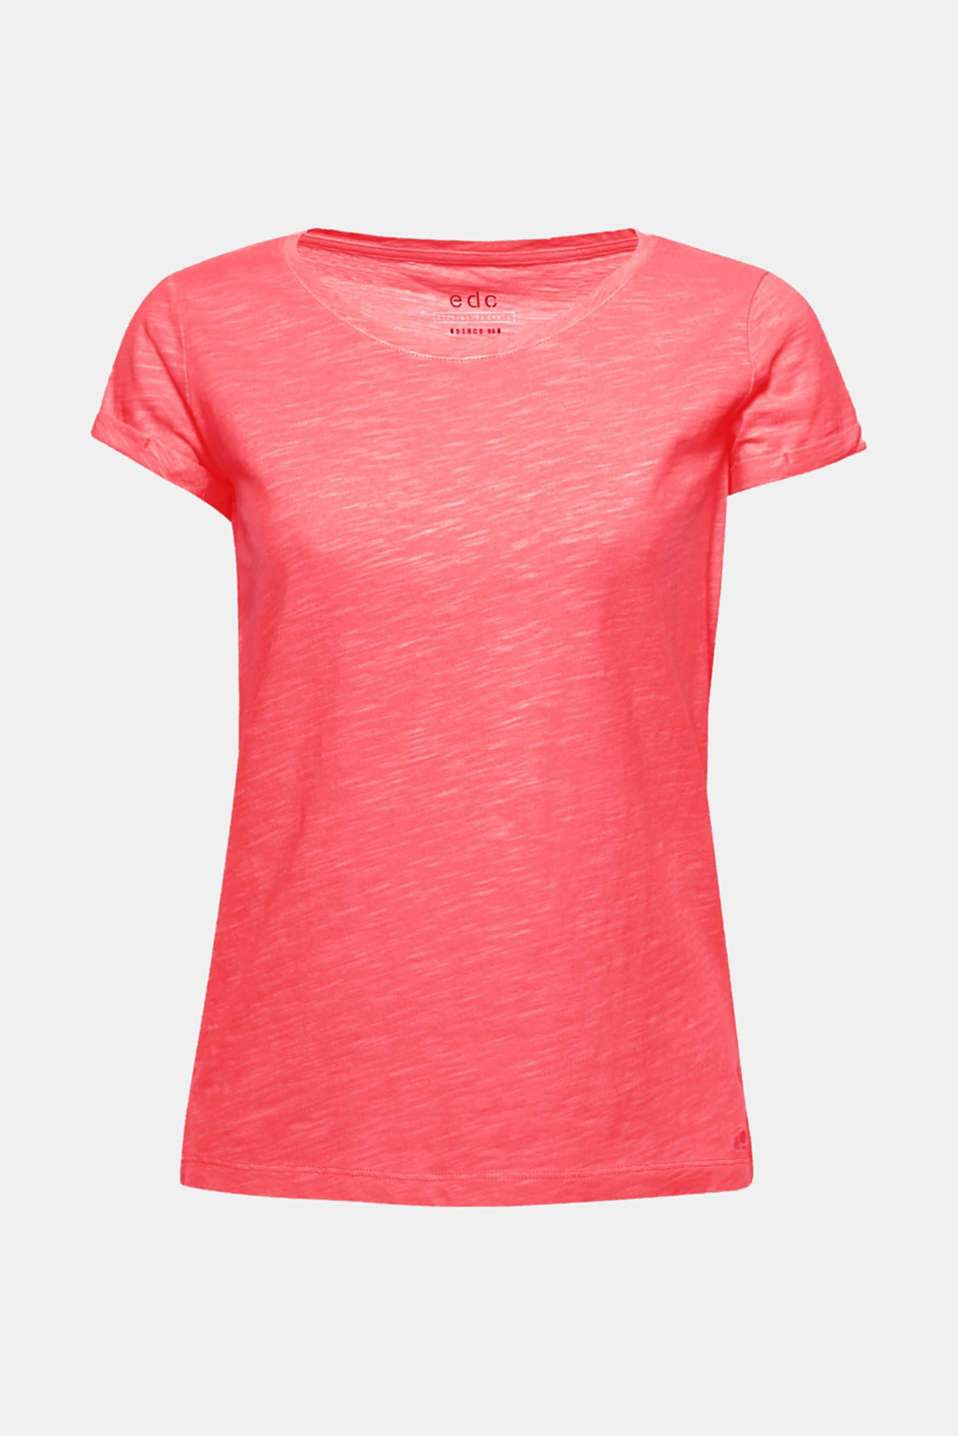 This cotton T-shirt in a relaxed cut and dazzling neon shade will give you a super fresh look in an instant!